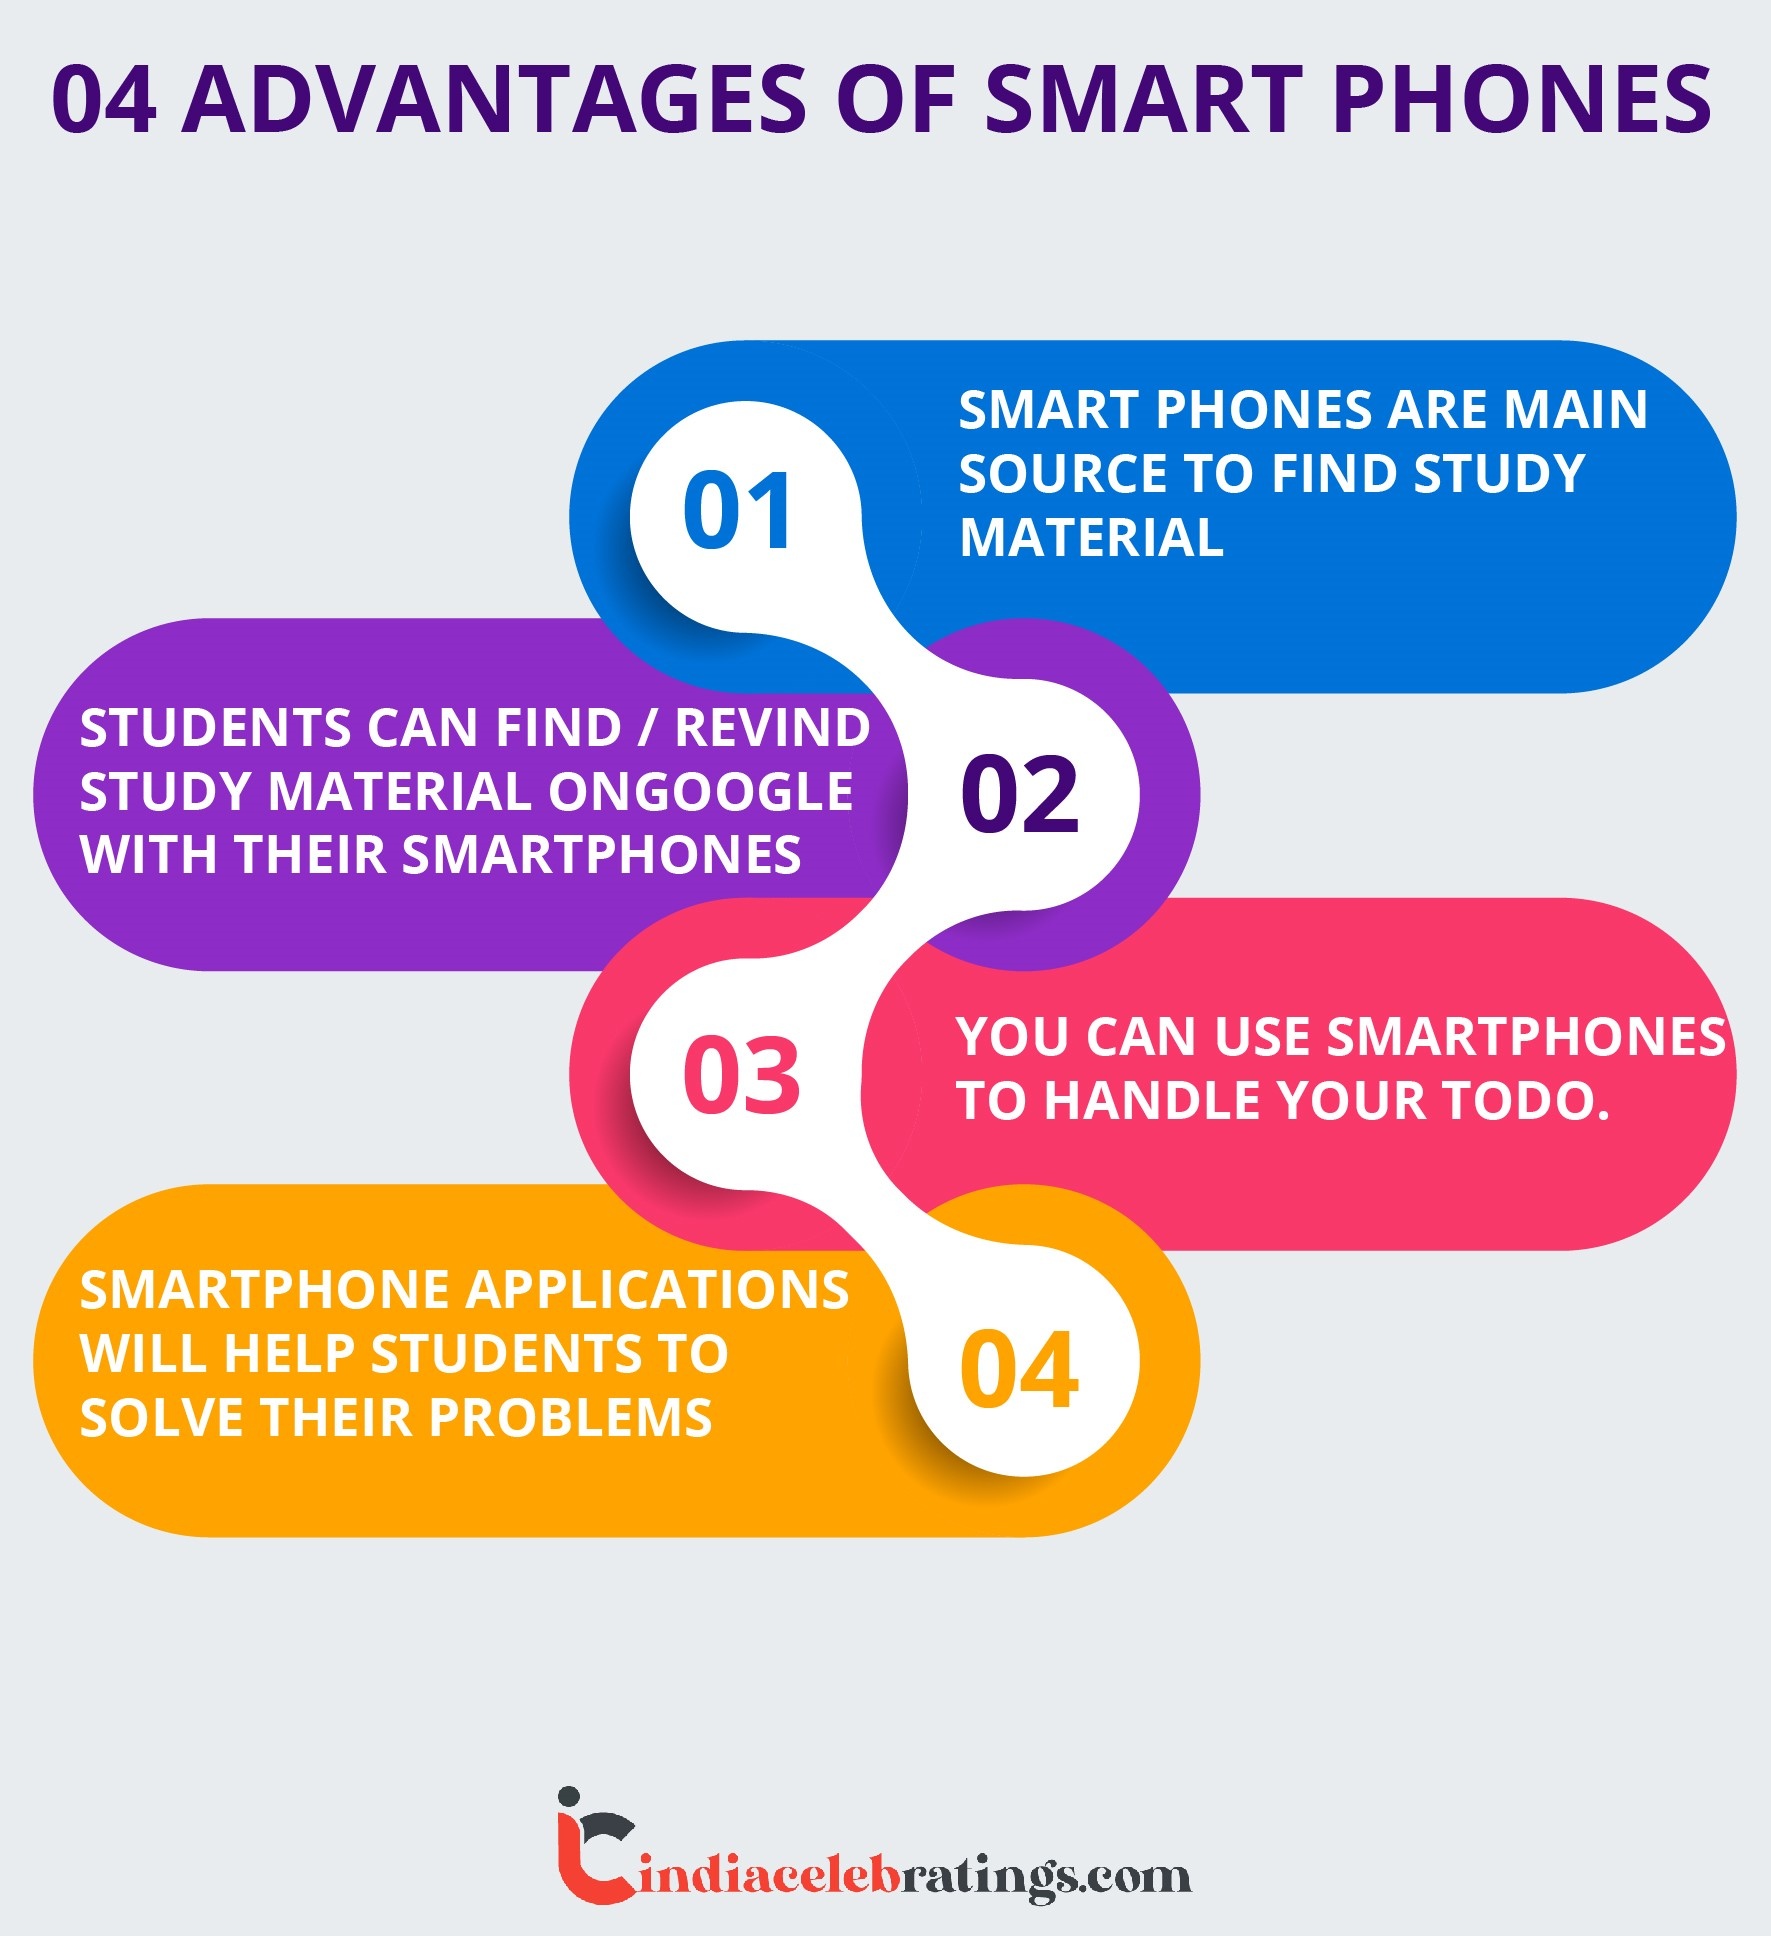 04 ADVANTAGES OF SMART PHONES